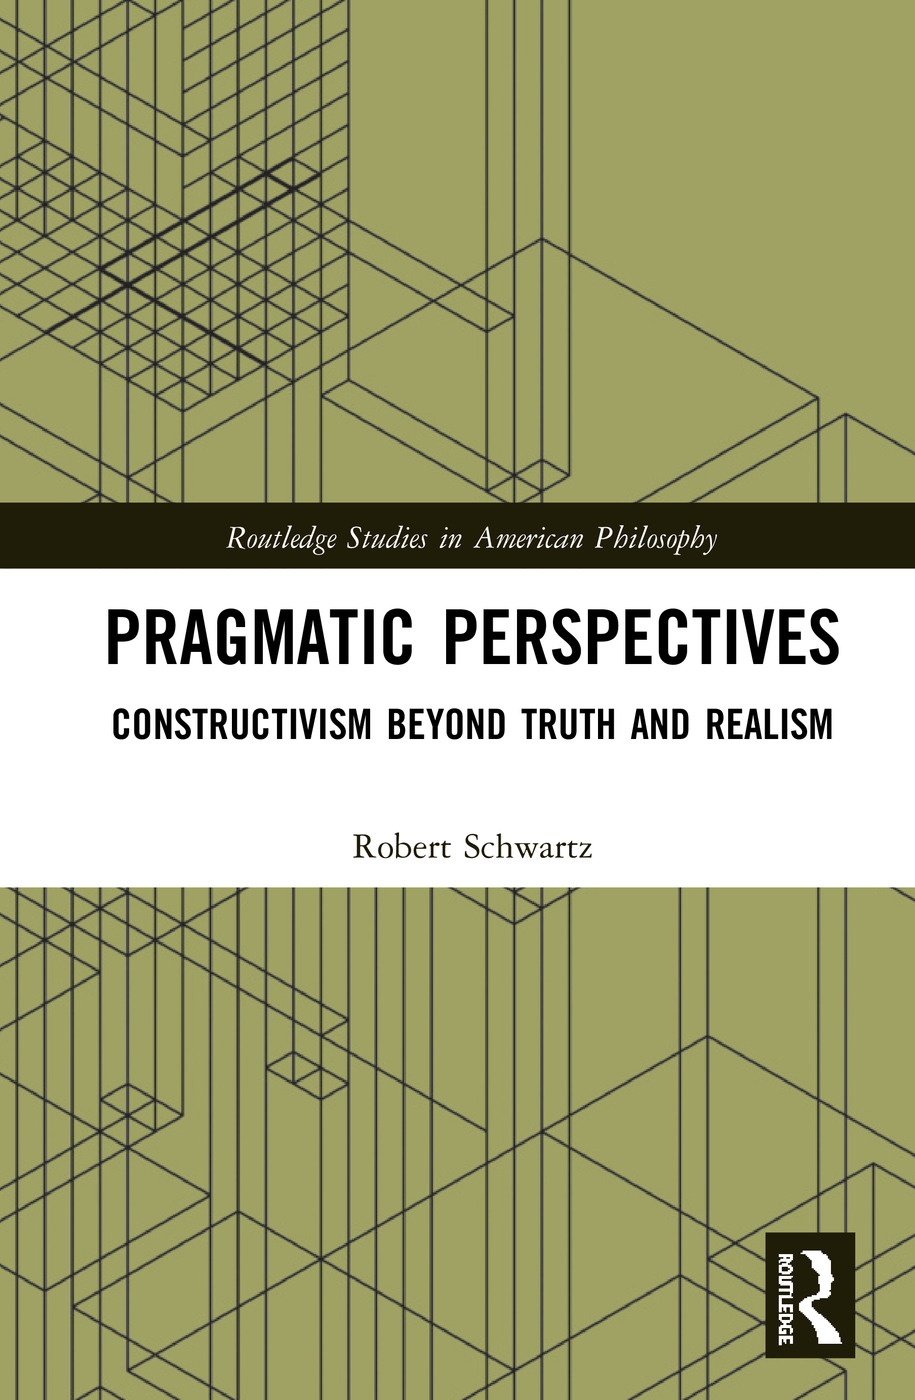 Pragmatic Perspectives: Constructivism beyond Truth and Realism book cover